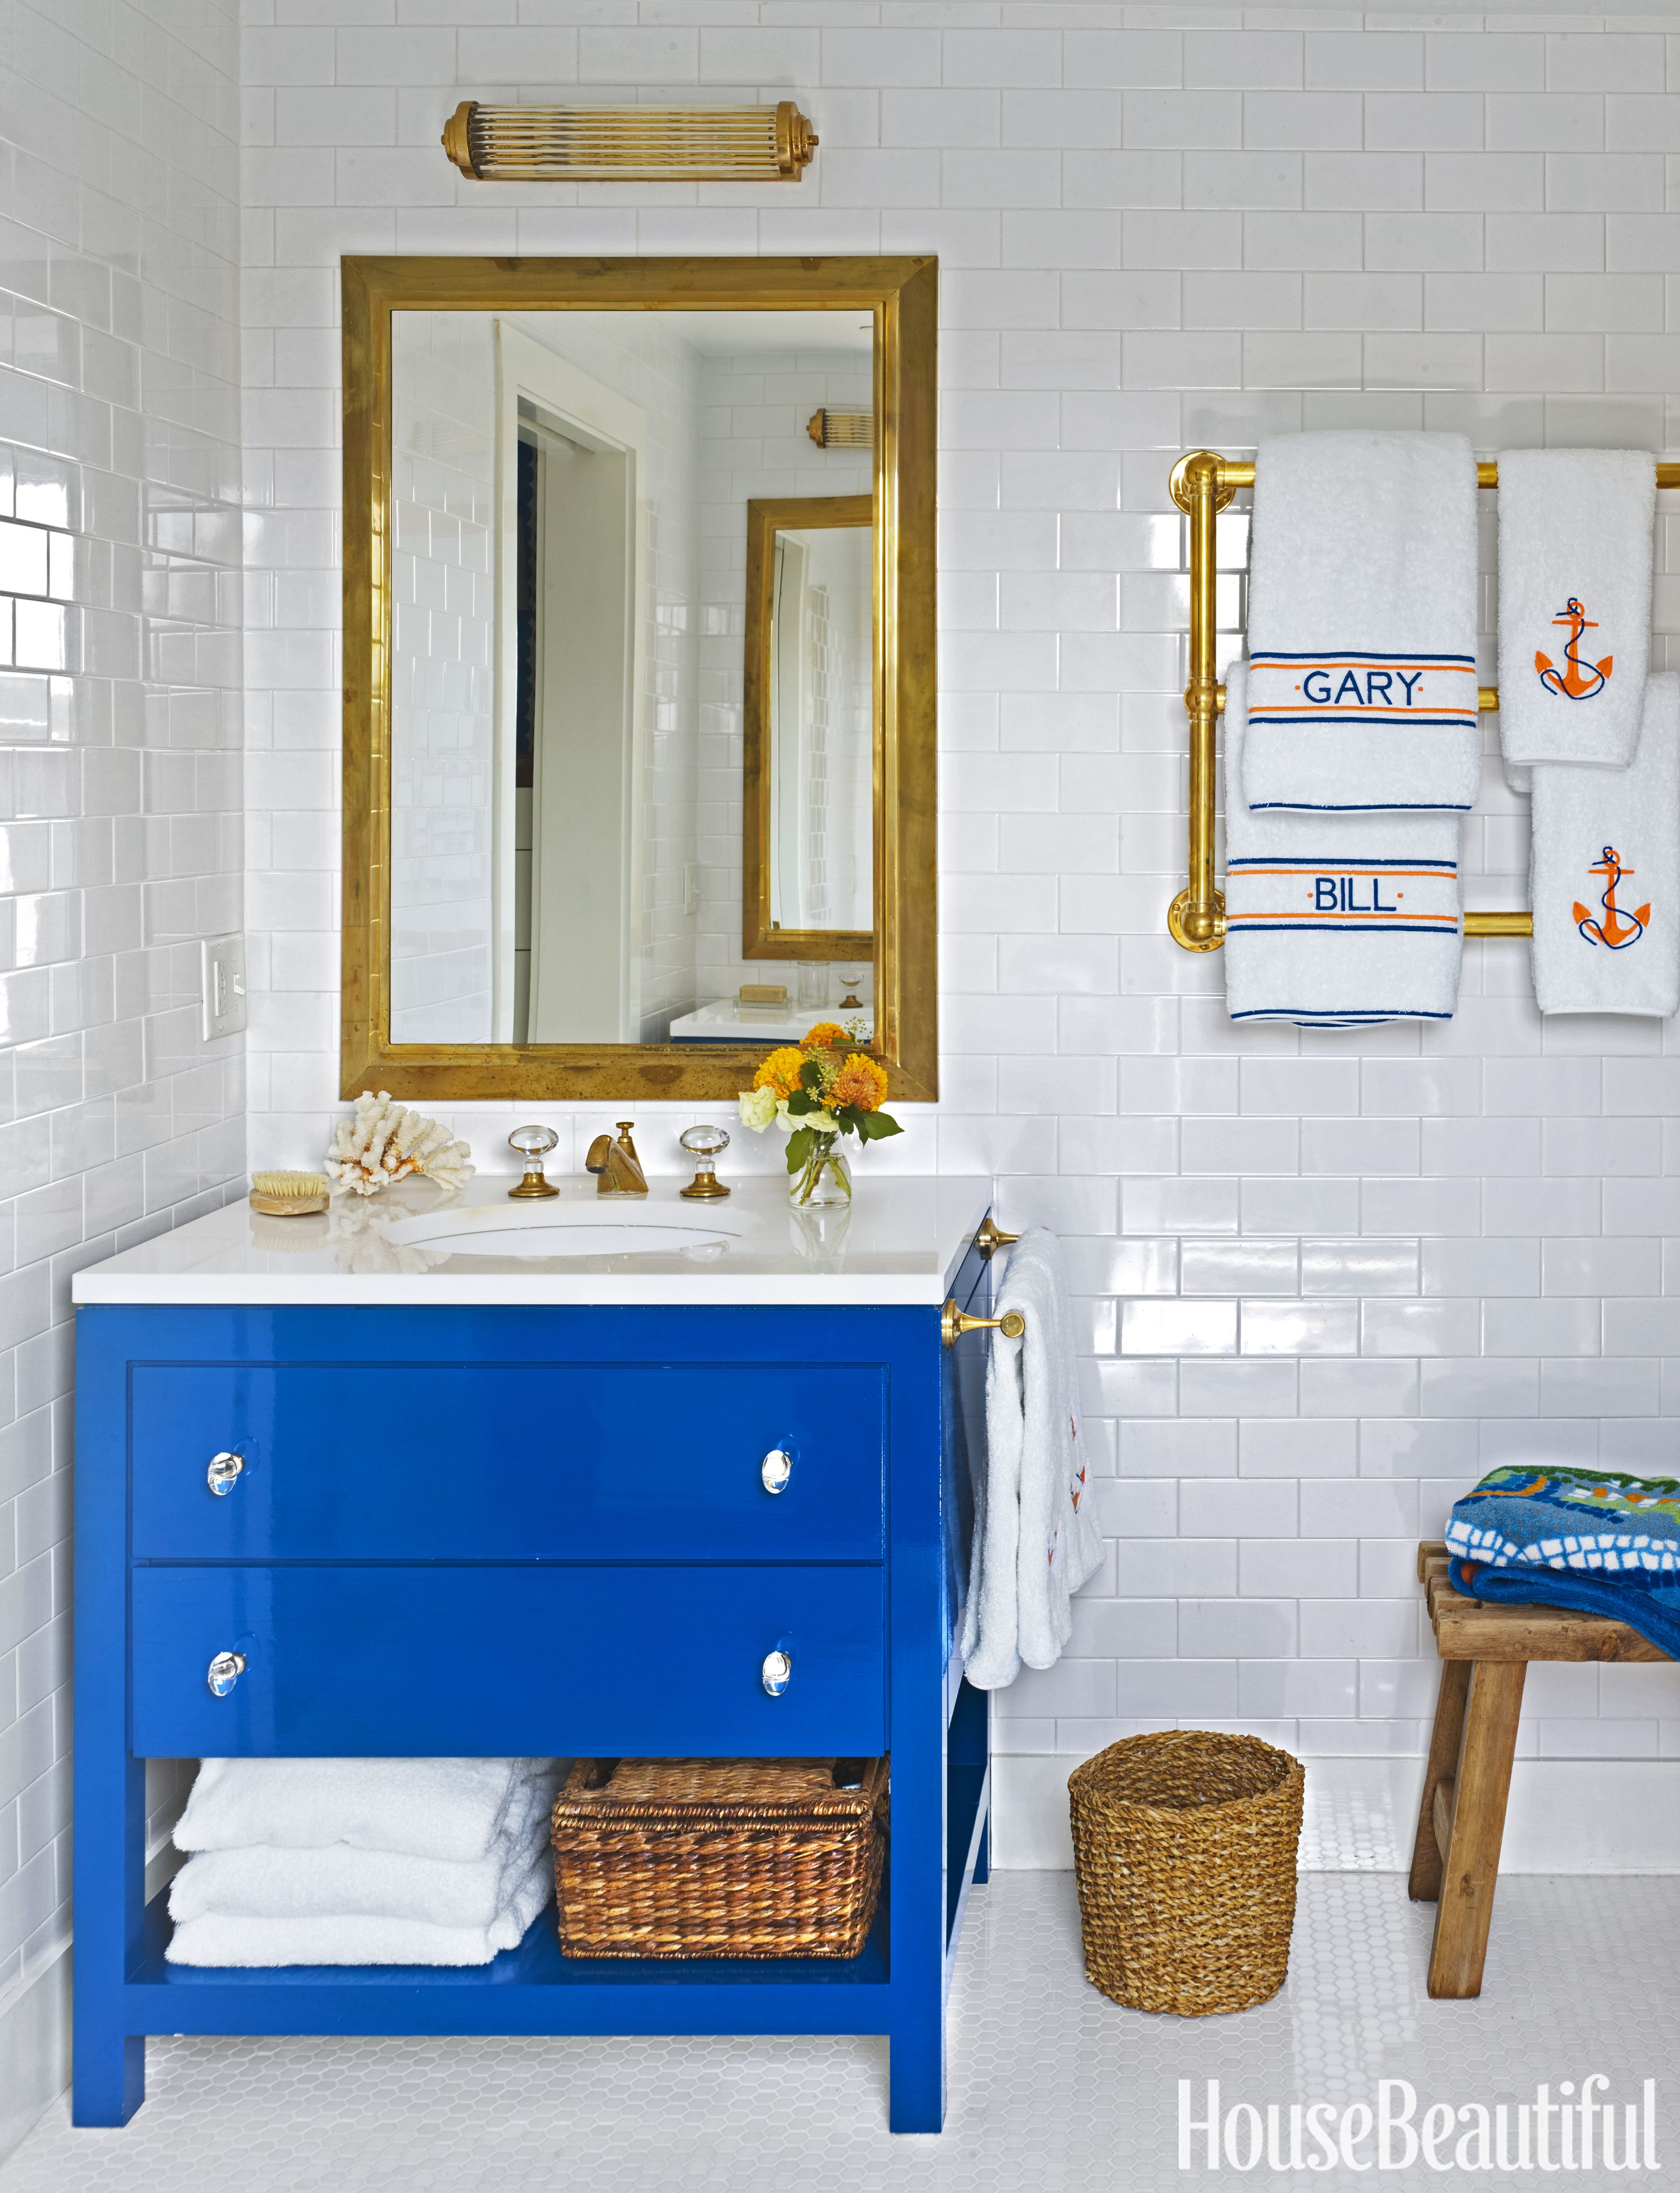 Nautical Finishes For his Nantucket home's master bath, designer Gary  McBournie chose Waterworks hardware in